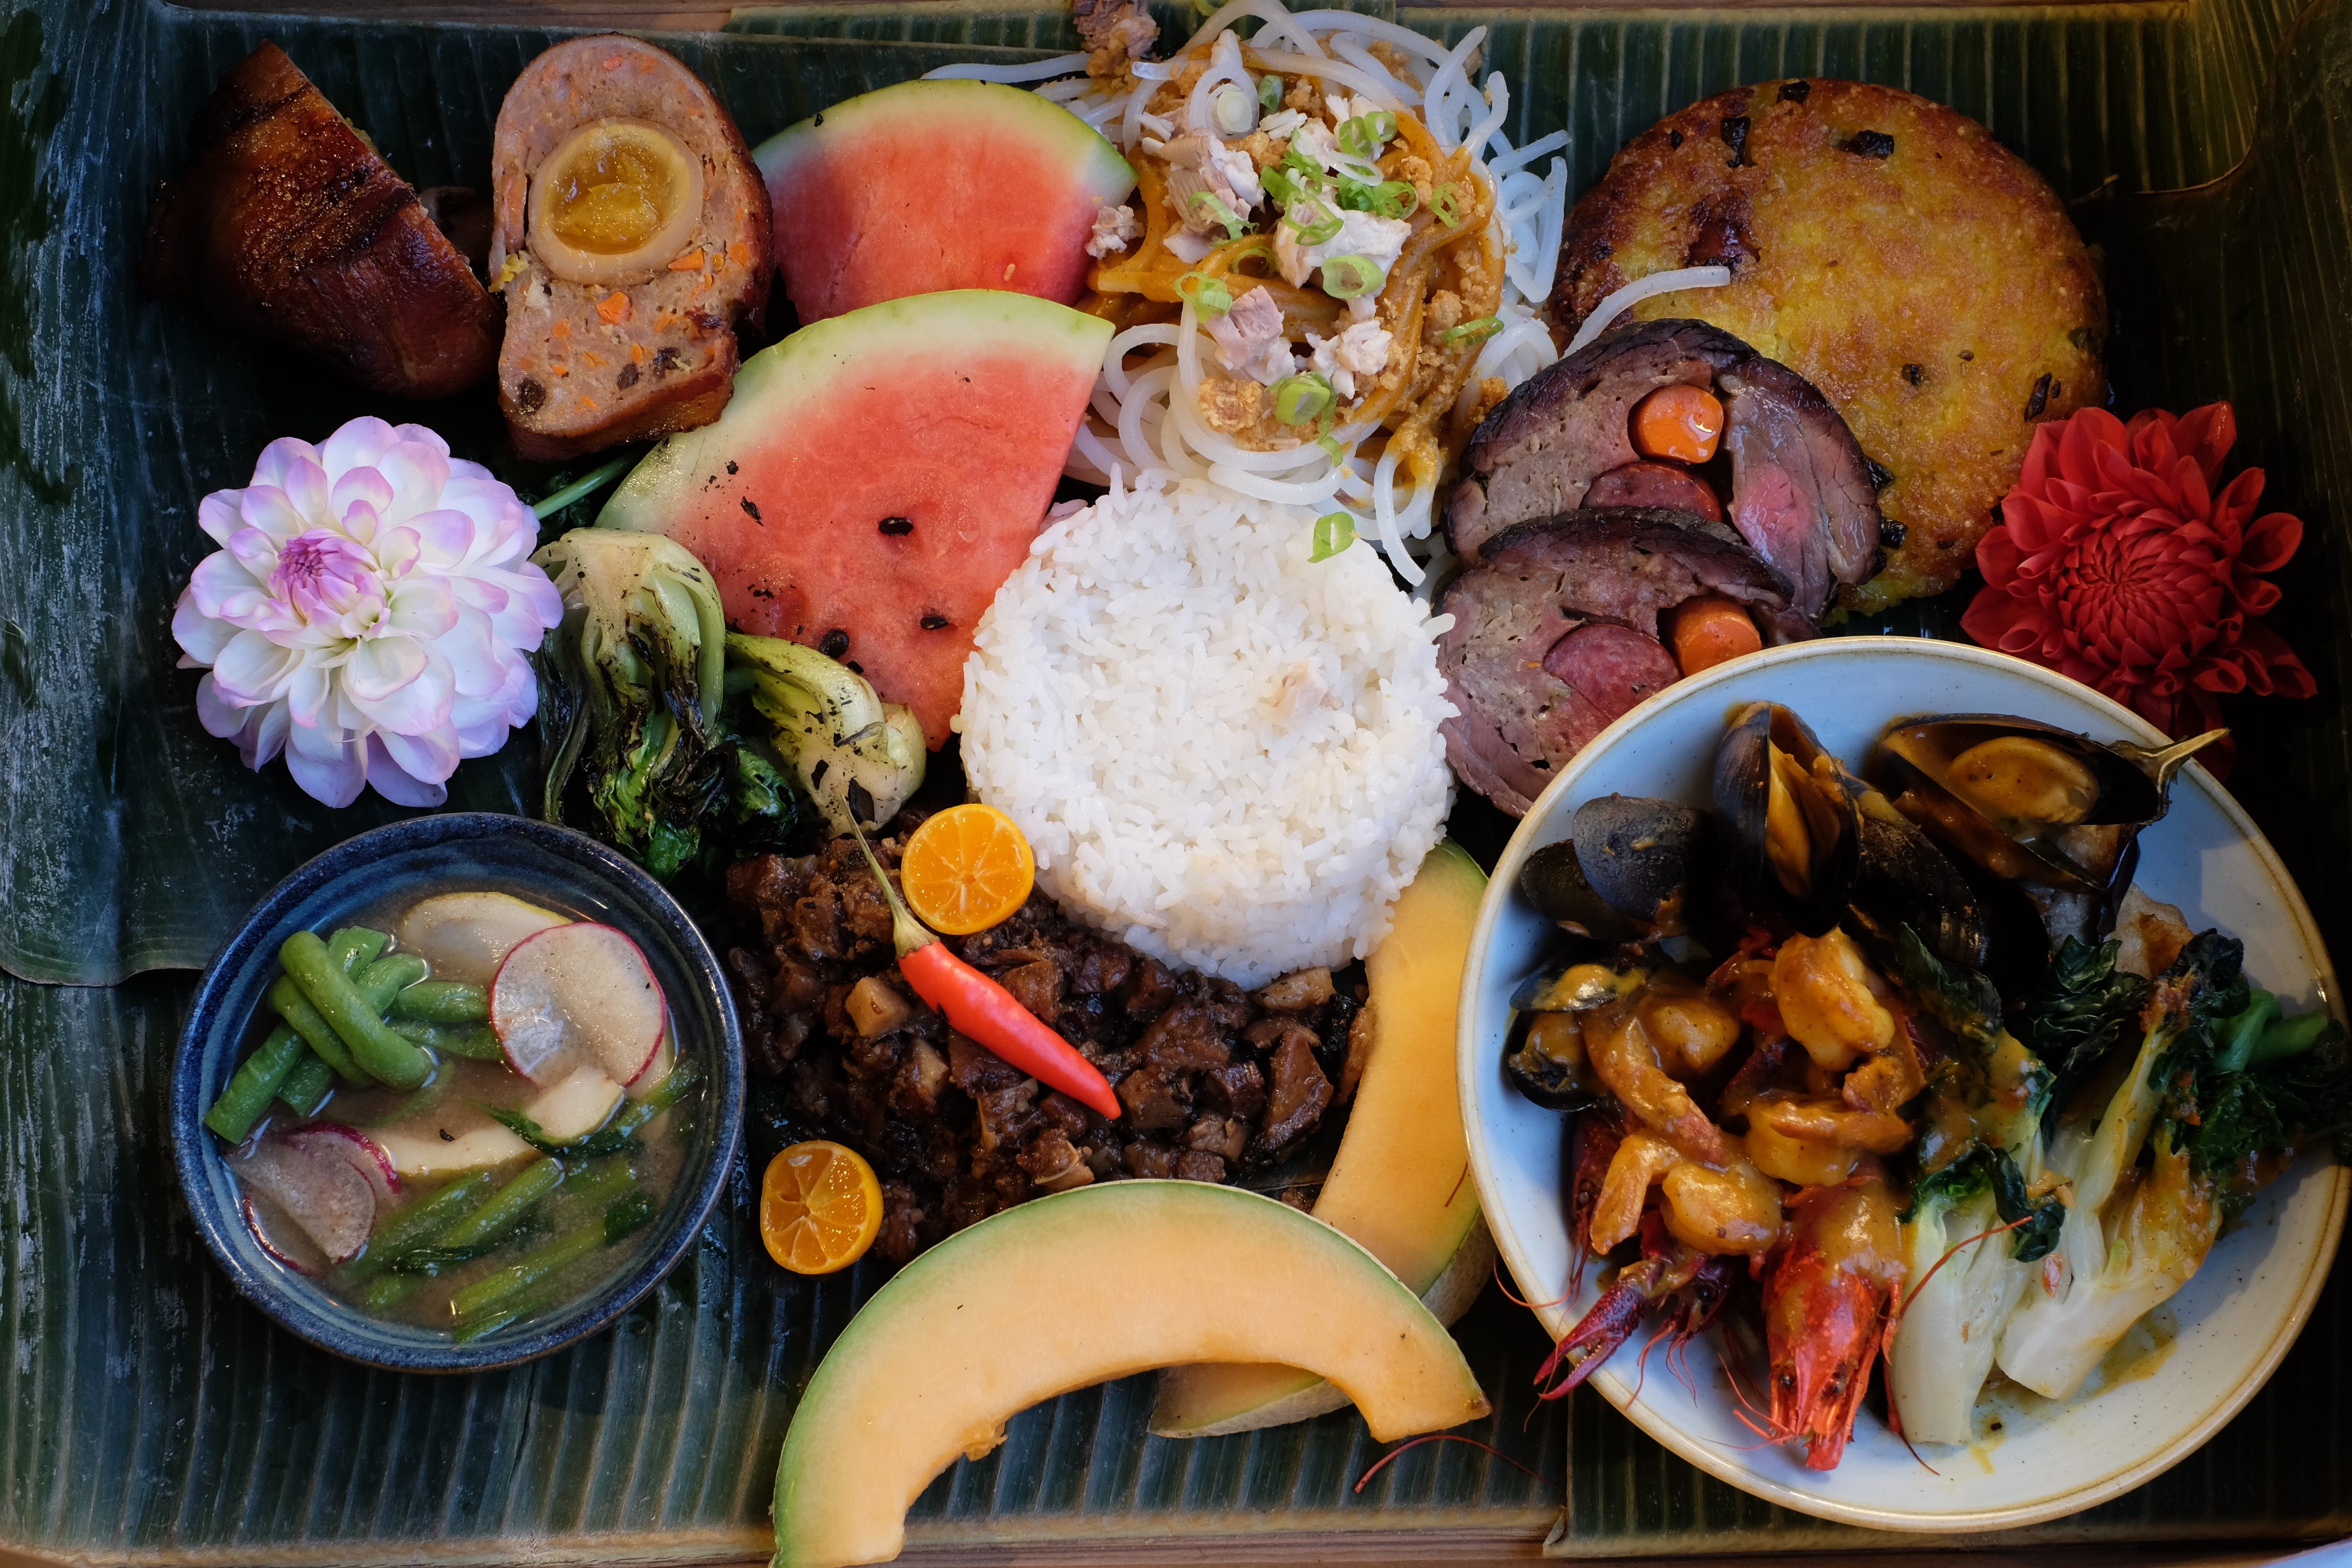 A spread of dishes laid out on banana leaves, including pork sisig, crispy sticky rice, and slices of fresh melon